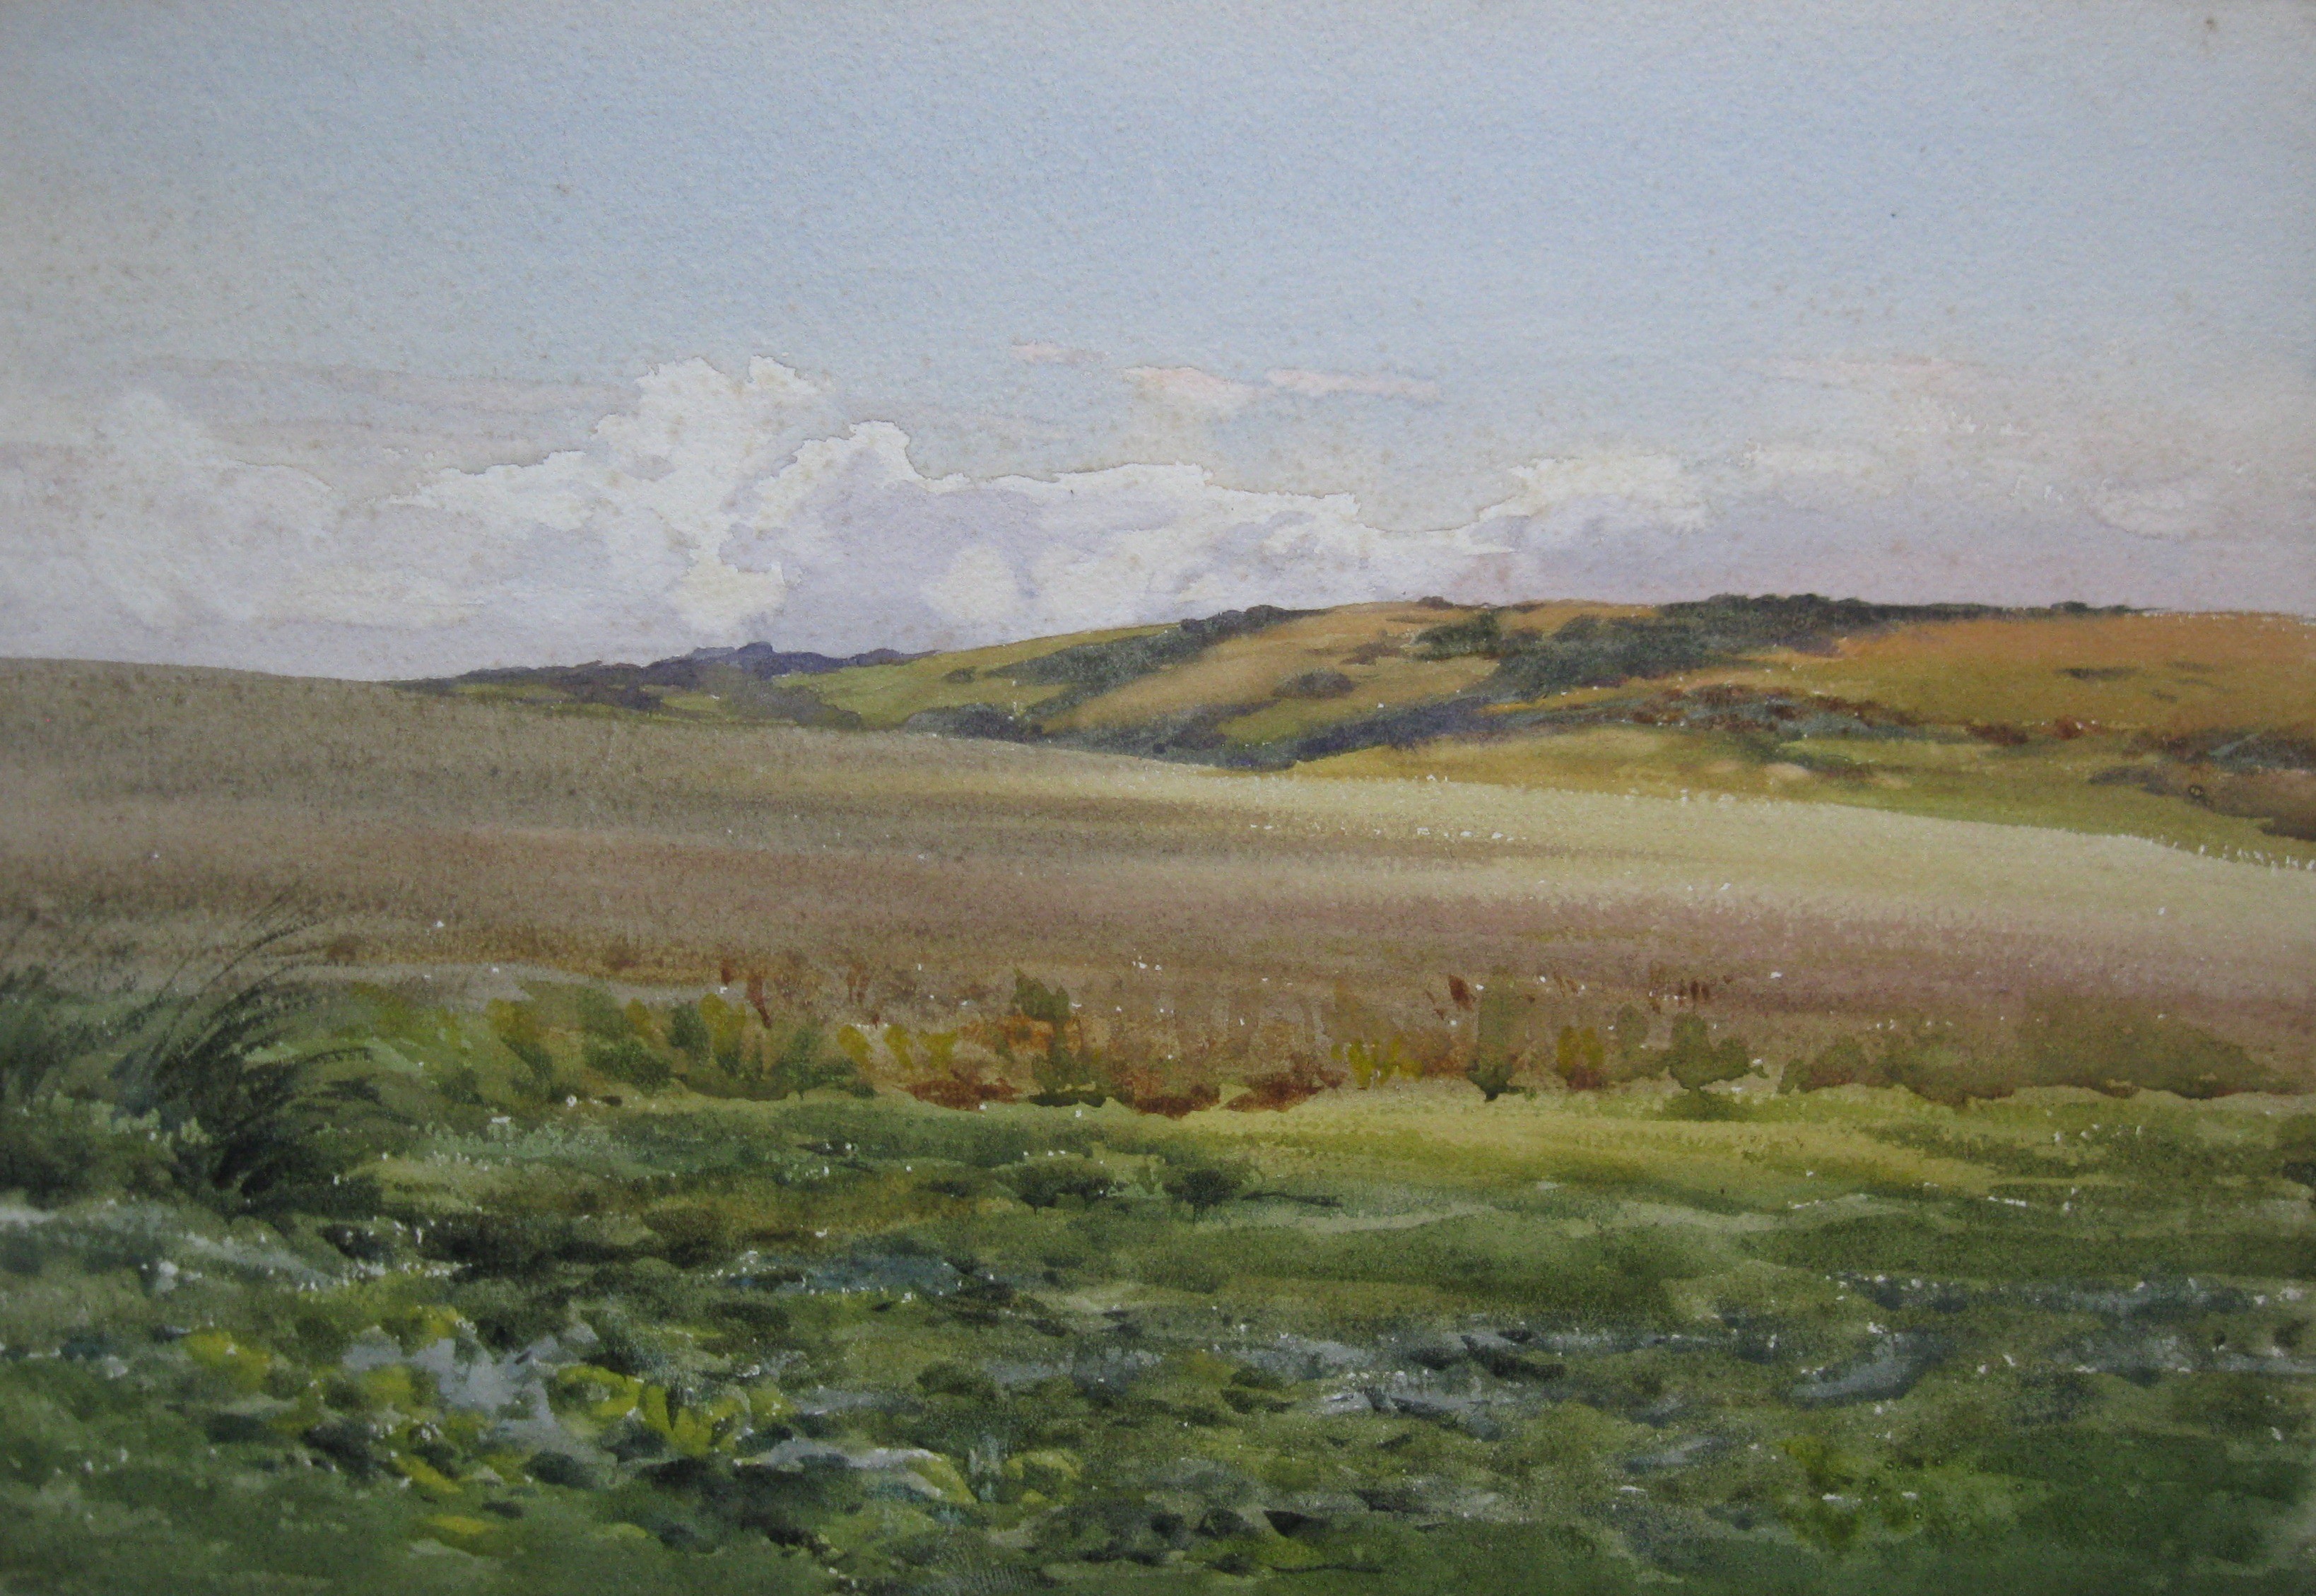 Charles James Adams 16 (Sketch of a far reaching view looking toward a sparsely wooded hillside)